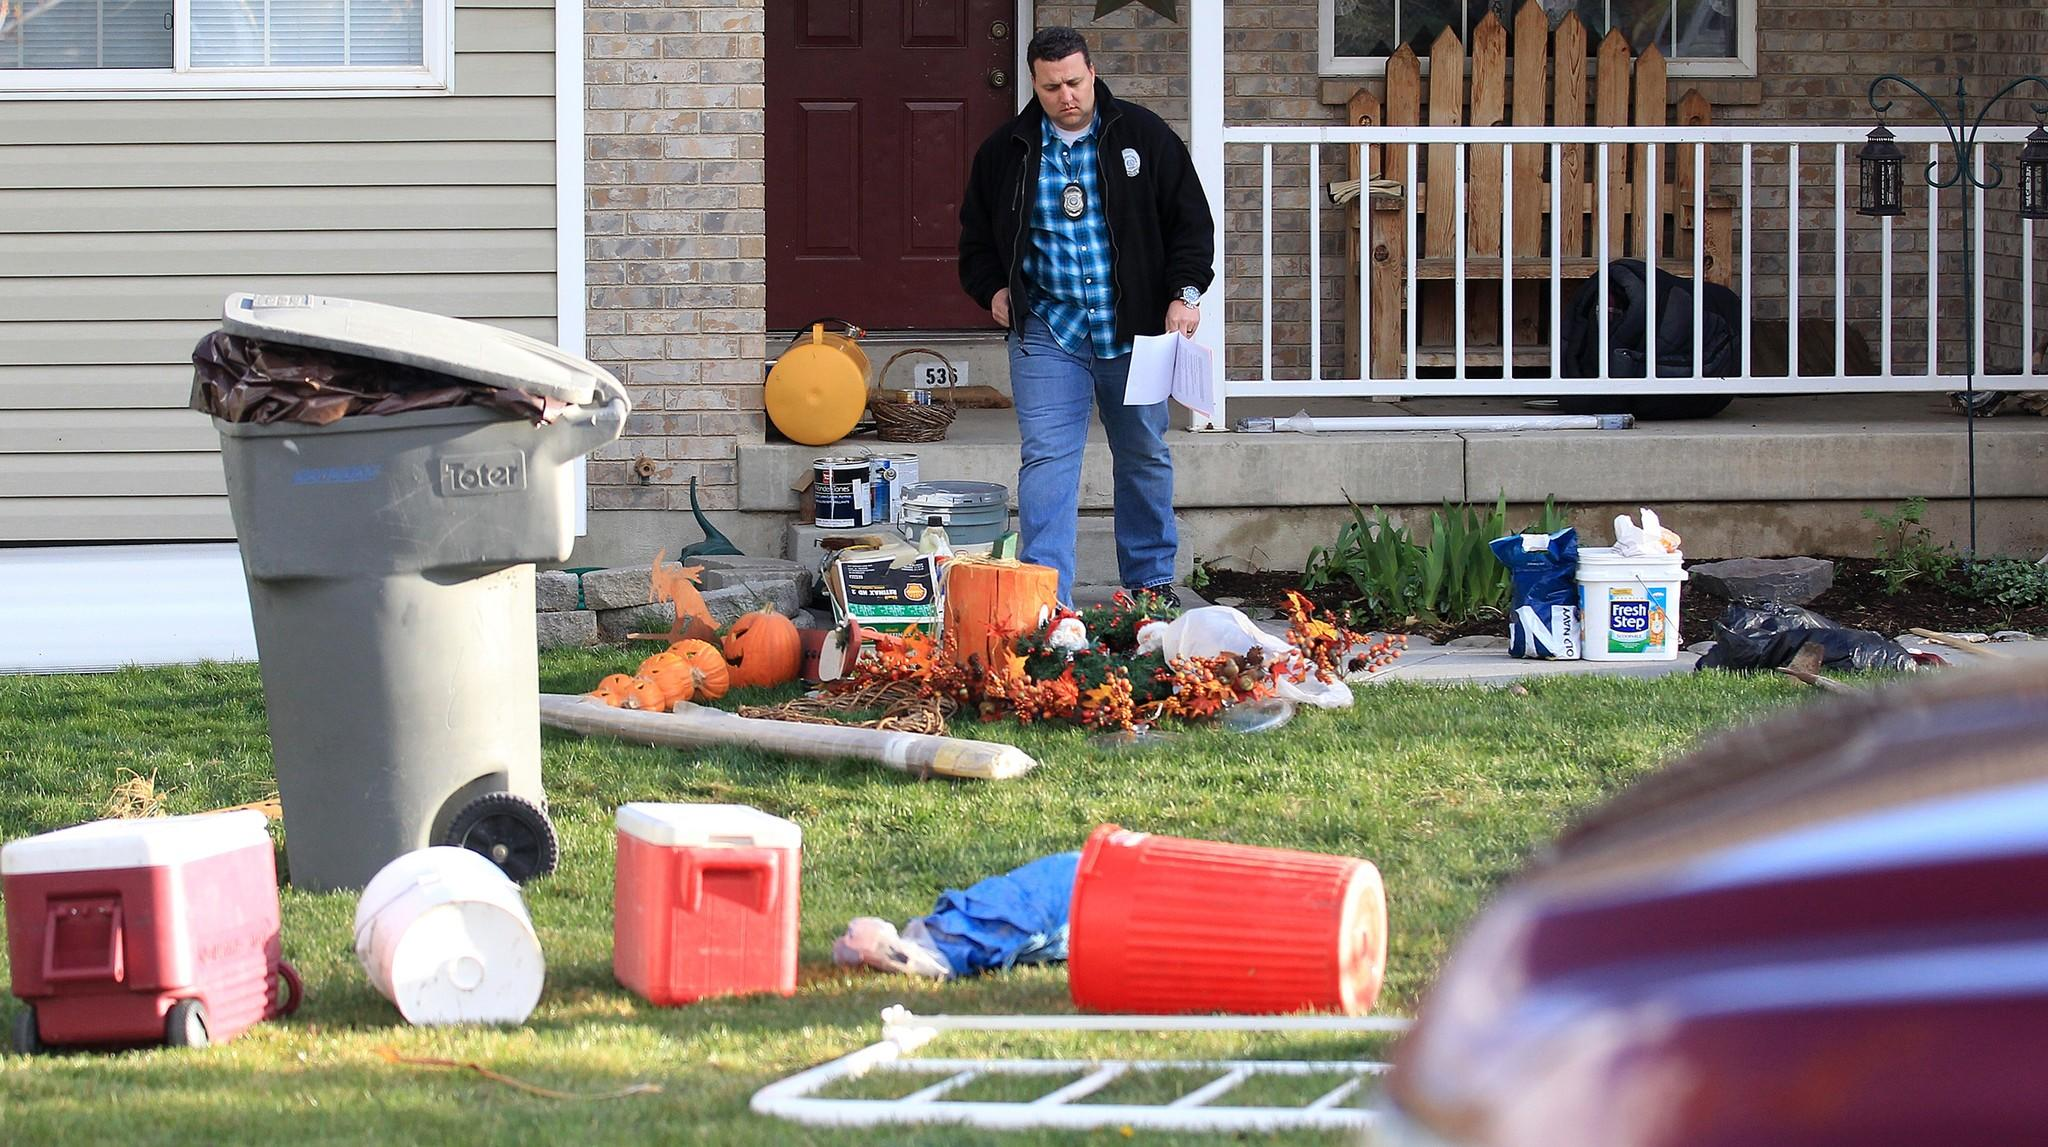 Police in Pleasant Grove, Utah, at a home where the bodies of seven infants were discovered.